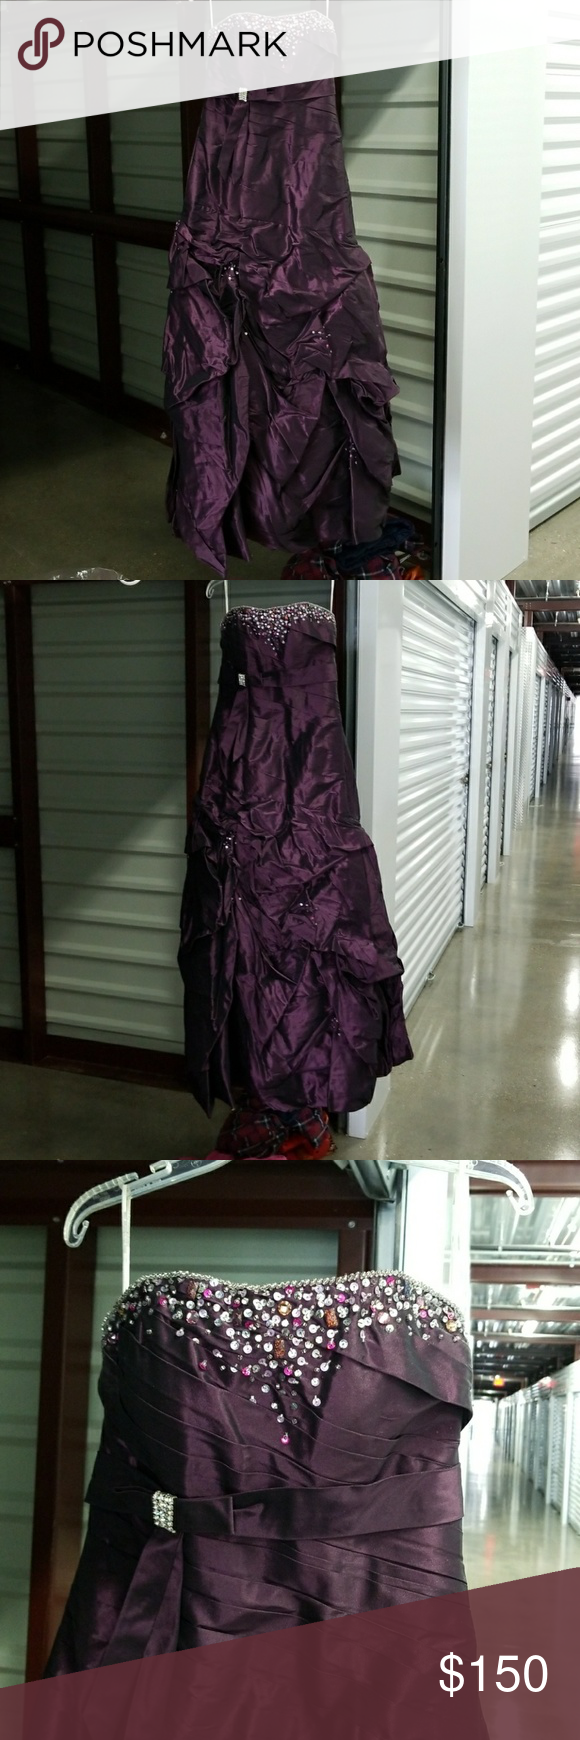 Alyce designs purple strapless prom dress size strapless prom